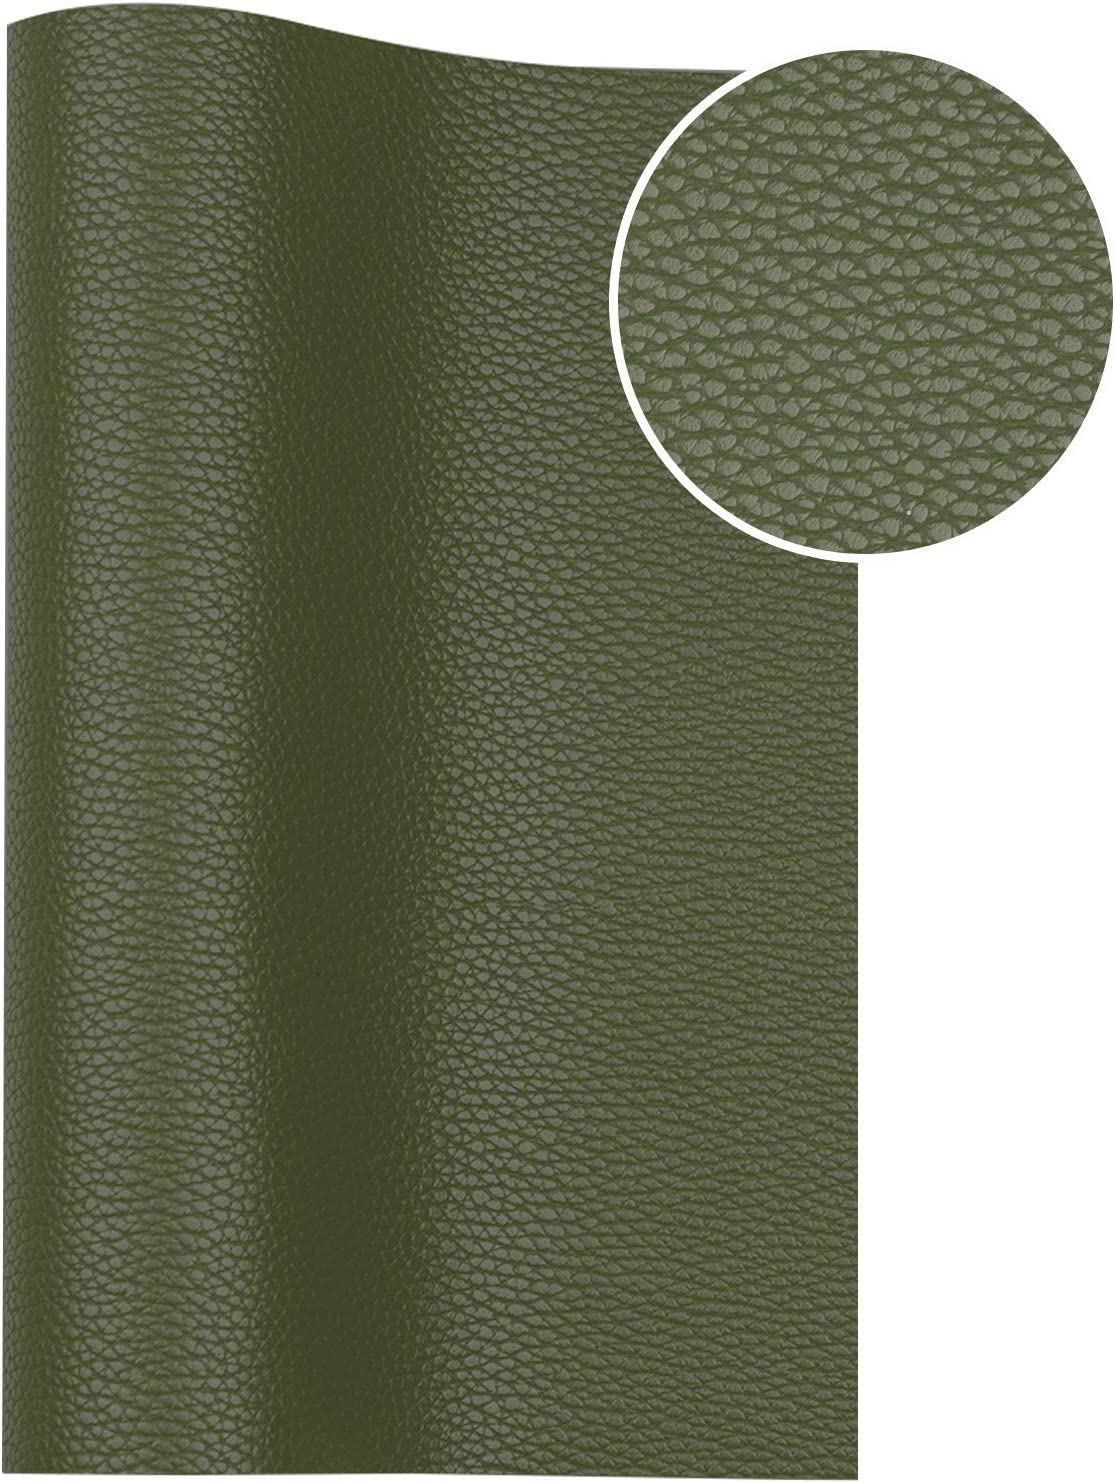 7.8X 53 Army Green Leather Fabric is Perfect for Leather Earrings and DIY Projects Ramya Solid Color Faux Leather Sheets